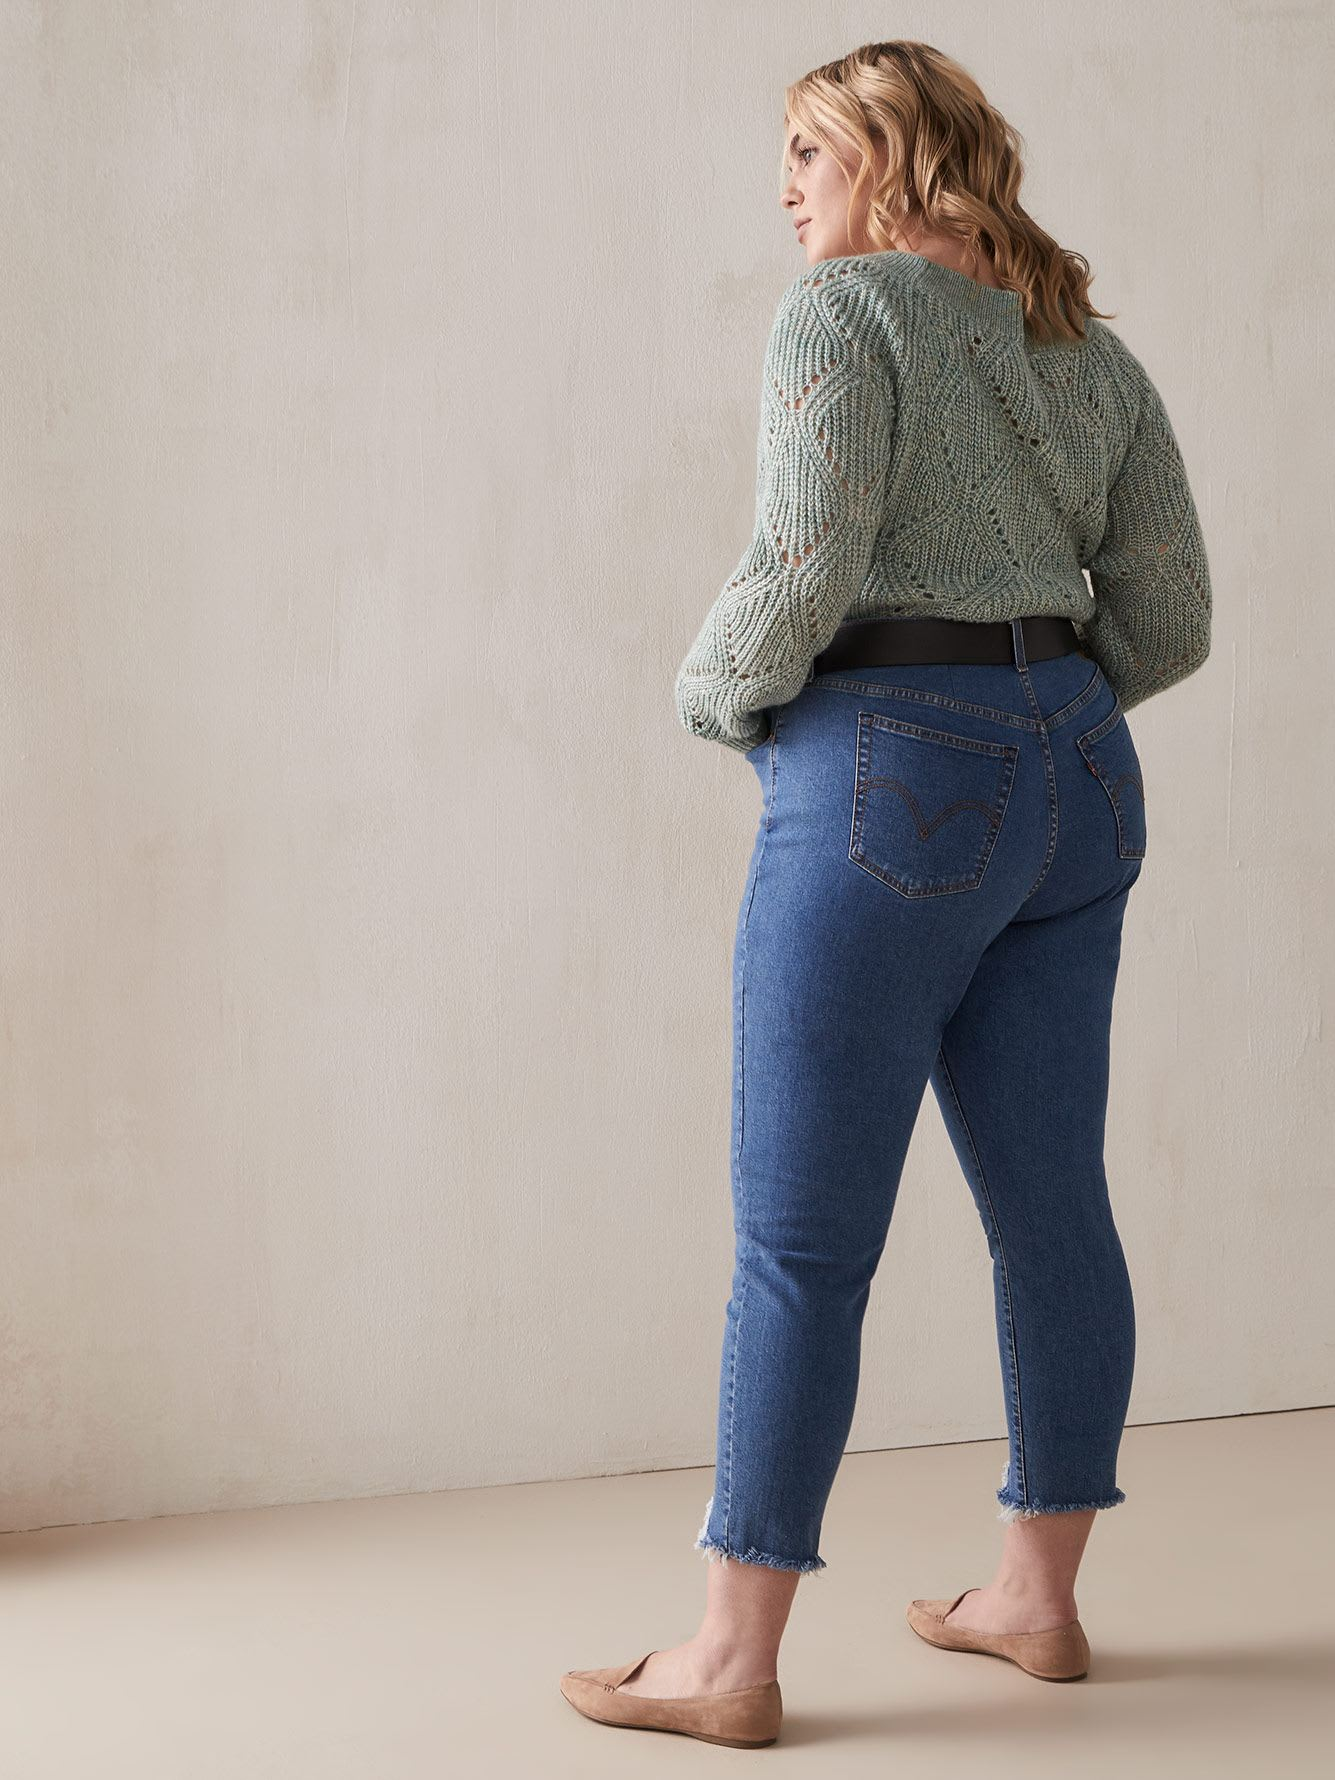 High-Waisted Wedgie Skinny Jean - Levi's Premium